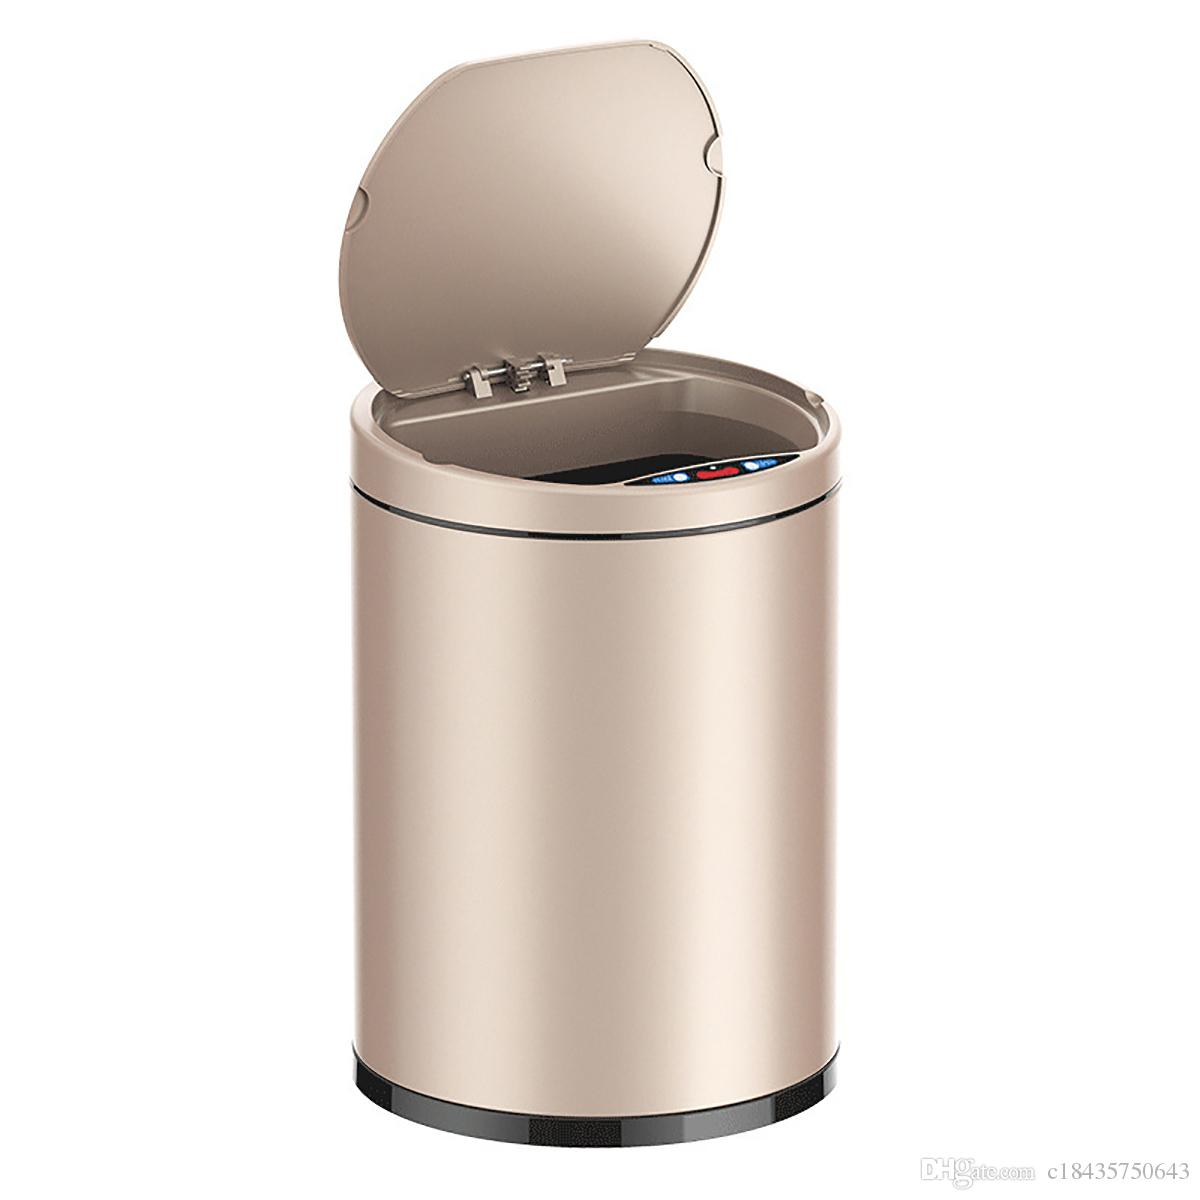 Small Kitchen Trash Cans Small Automatic Trash Can Touchless Intelligent Induction Garbage Bin With Inner Bucket Contactless Circulator Quiet Lid Close Can Rose Gold